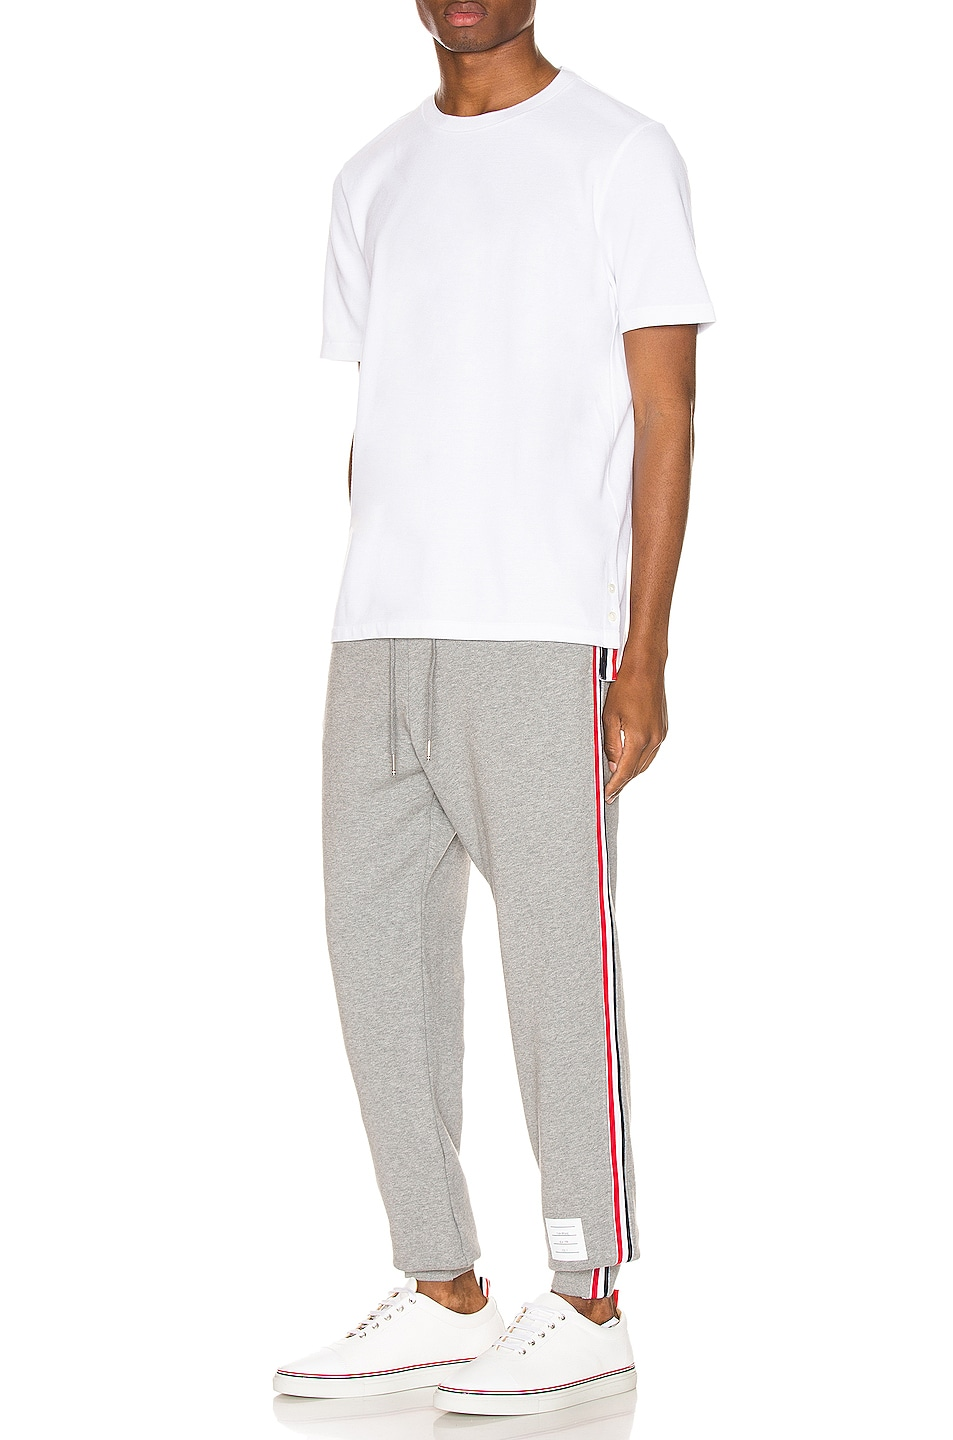 Image 5 of Thom Browne Sweatpants in Light Grey